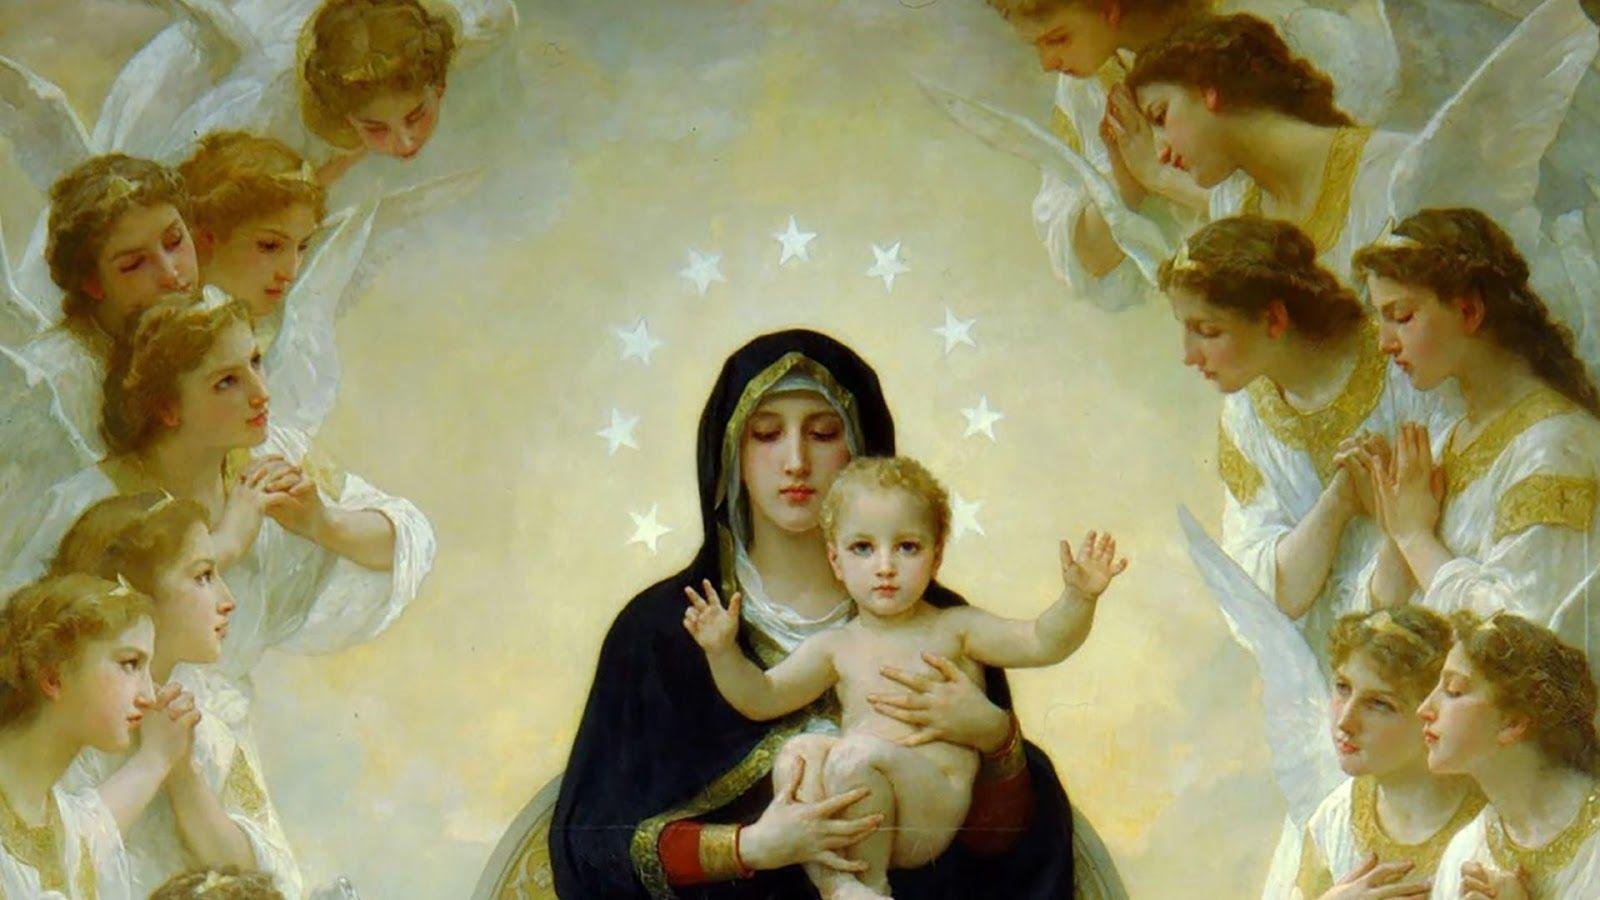 Wallpapers Of Virgin Mary 1600x900